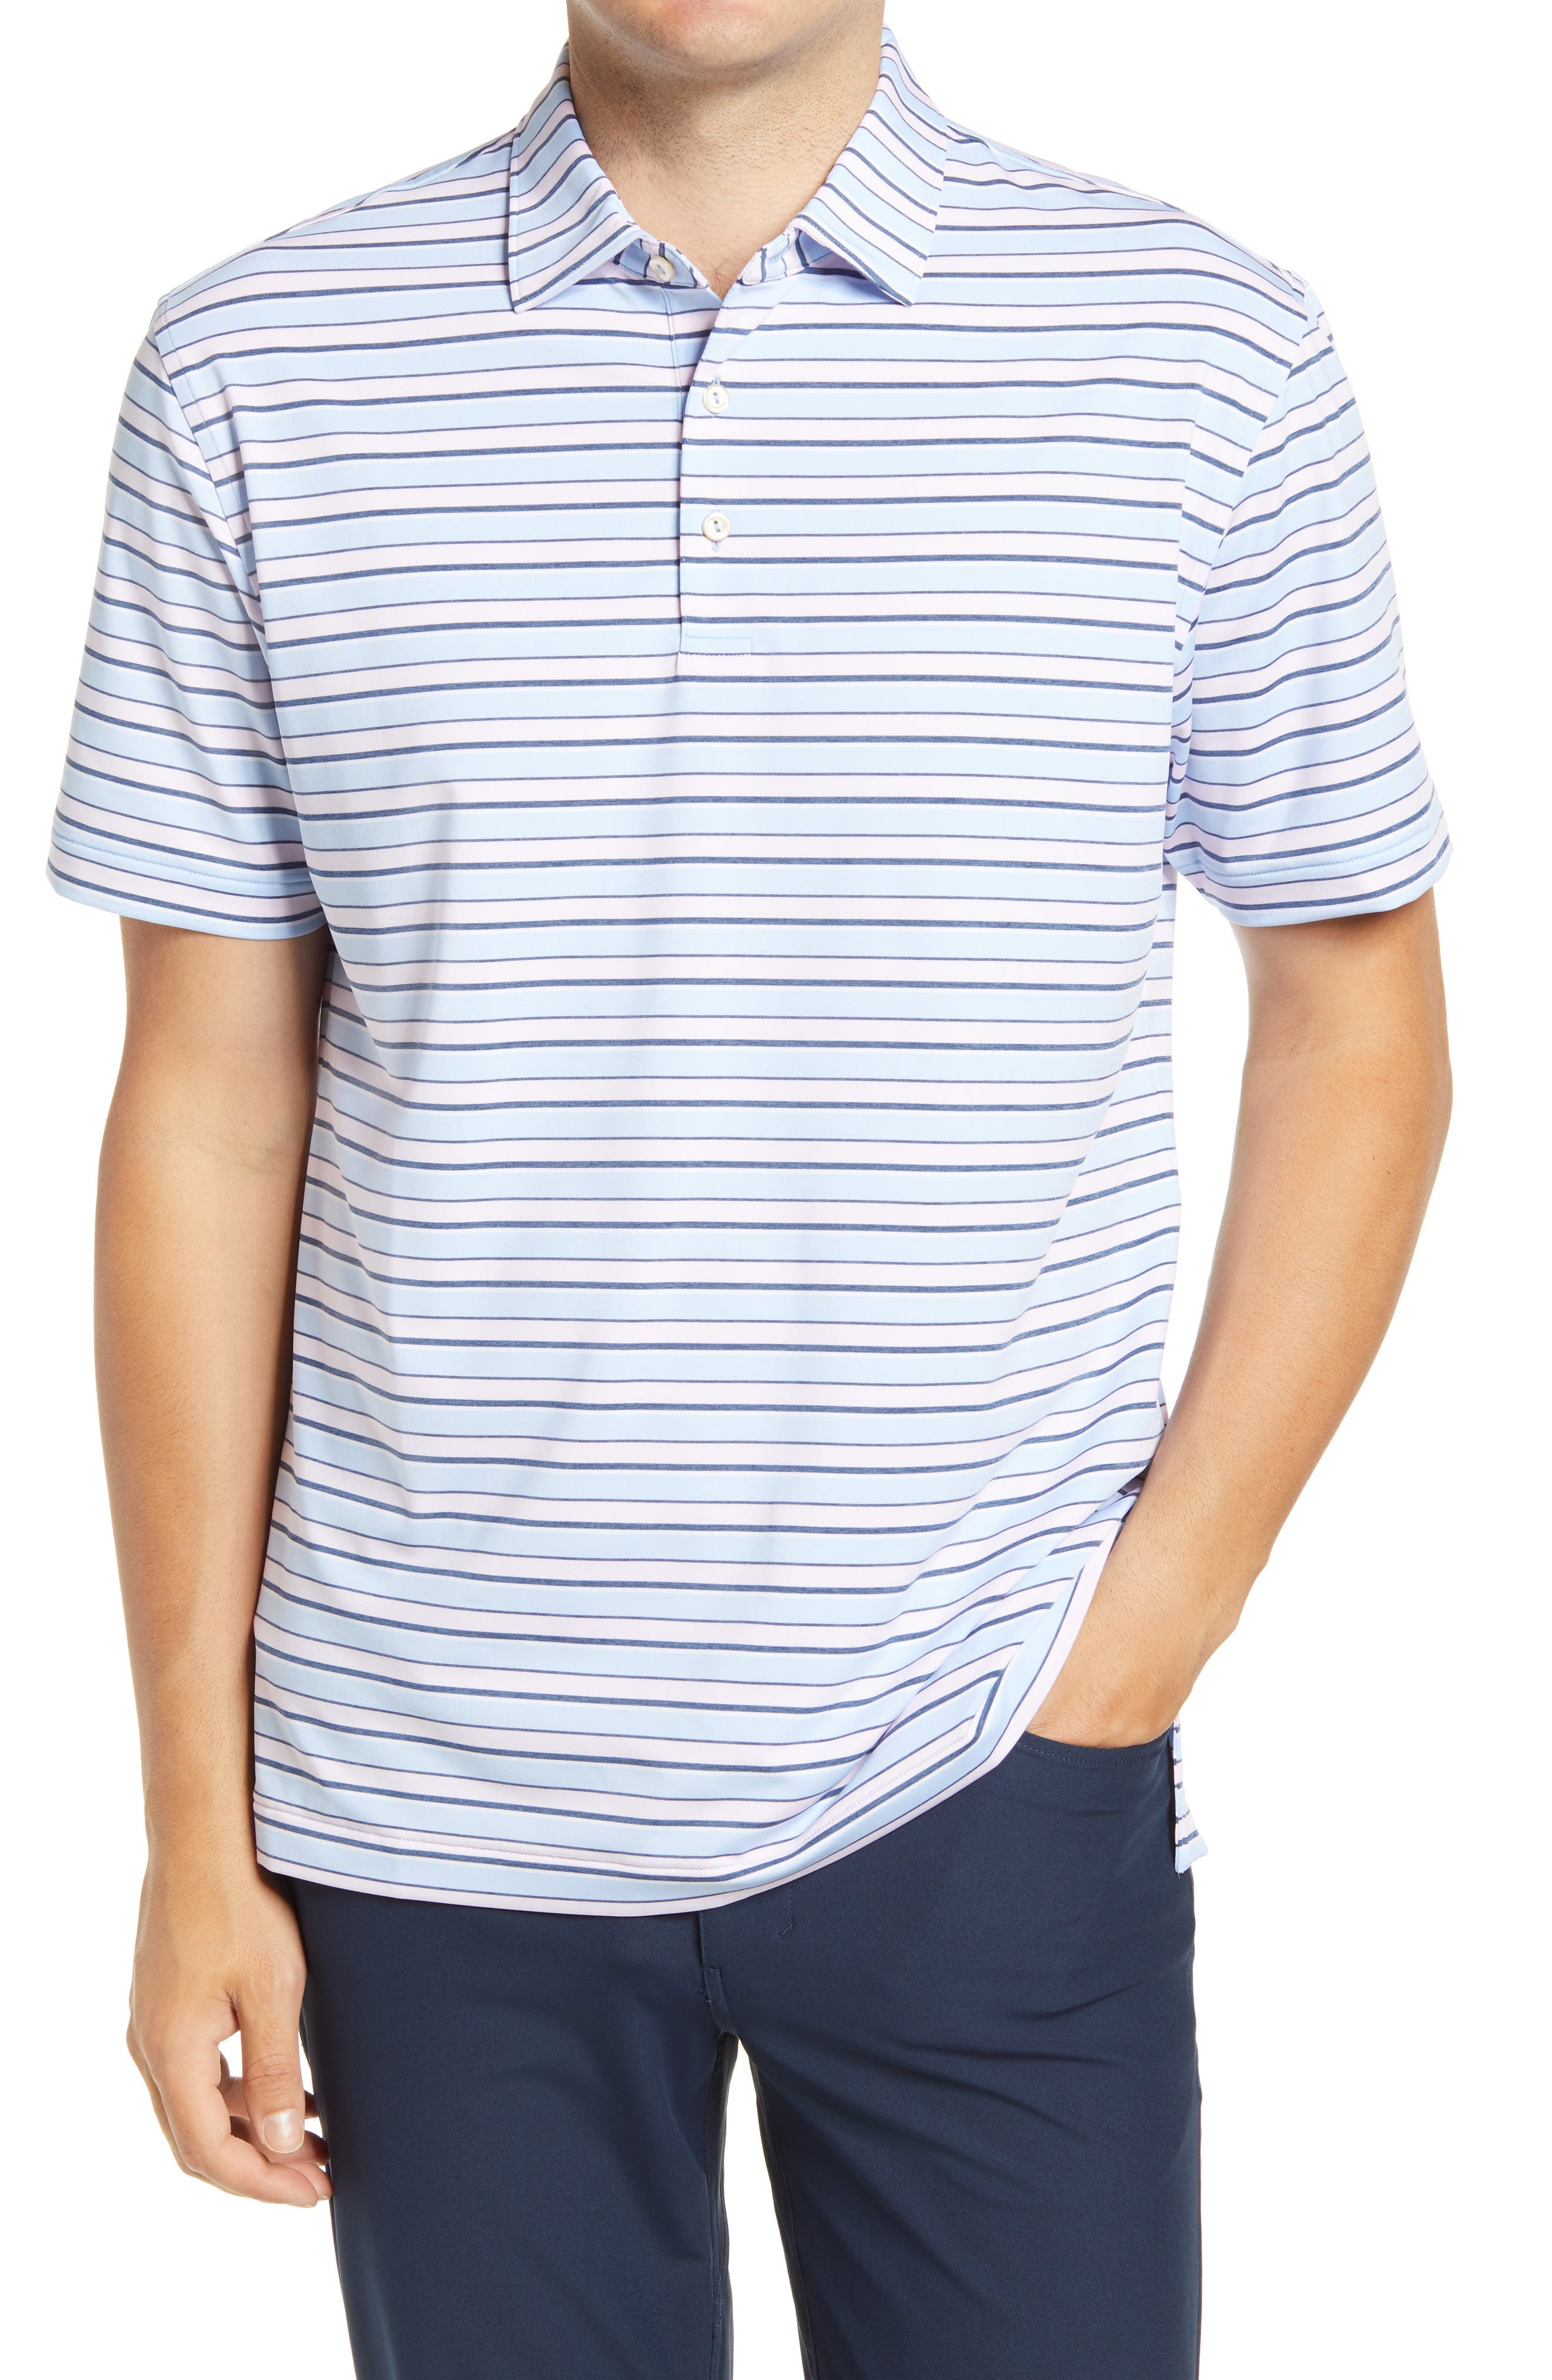 Stretchy, moisture-wicking fabric keeps up with you from links to lunch in a striped golf polo that resists odors and blocks harmful UV rays in any activity. Style Name: Peter Millar Robin Stripe Performance Polo. Style Number: 6092508. Available in stores.